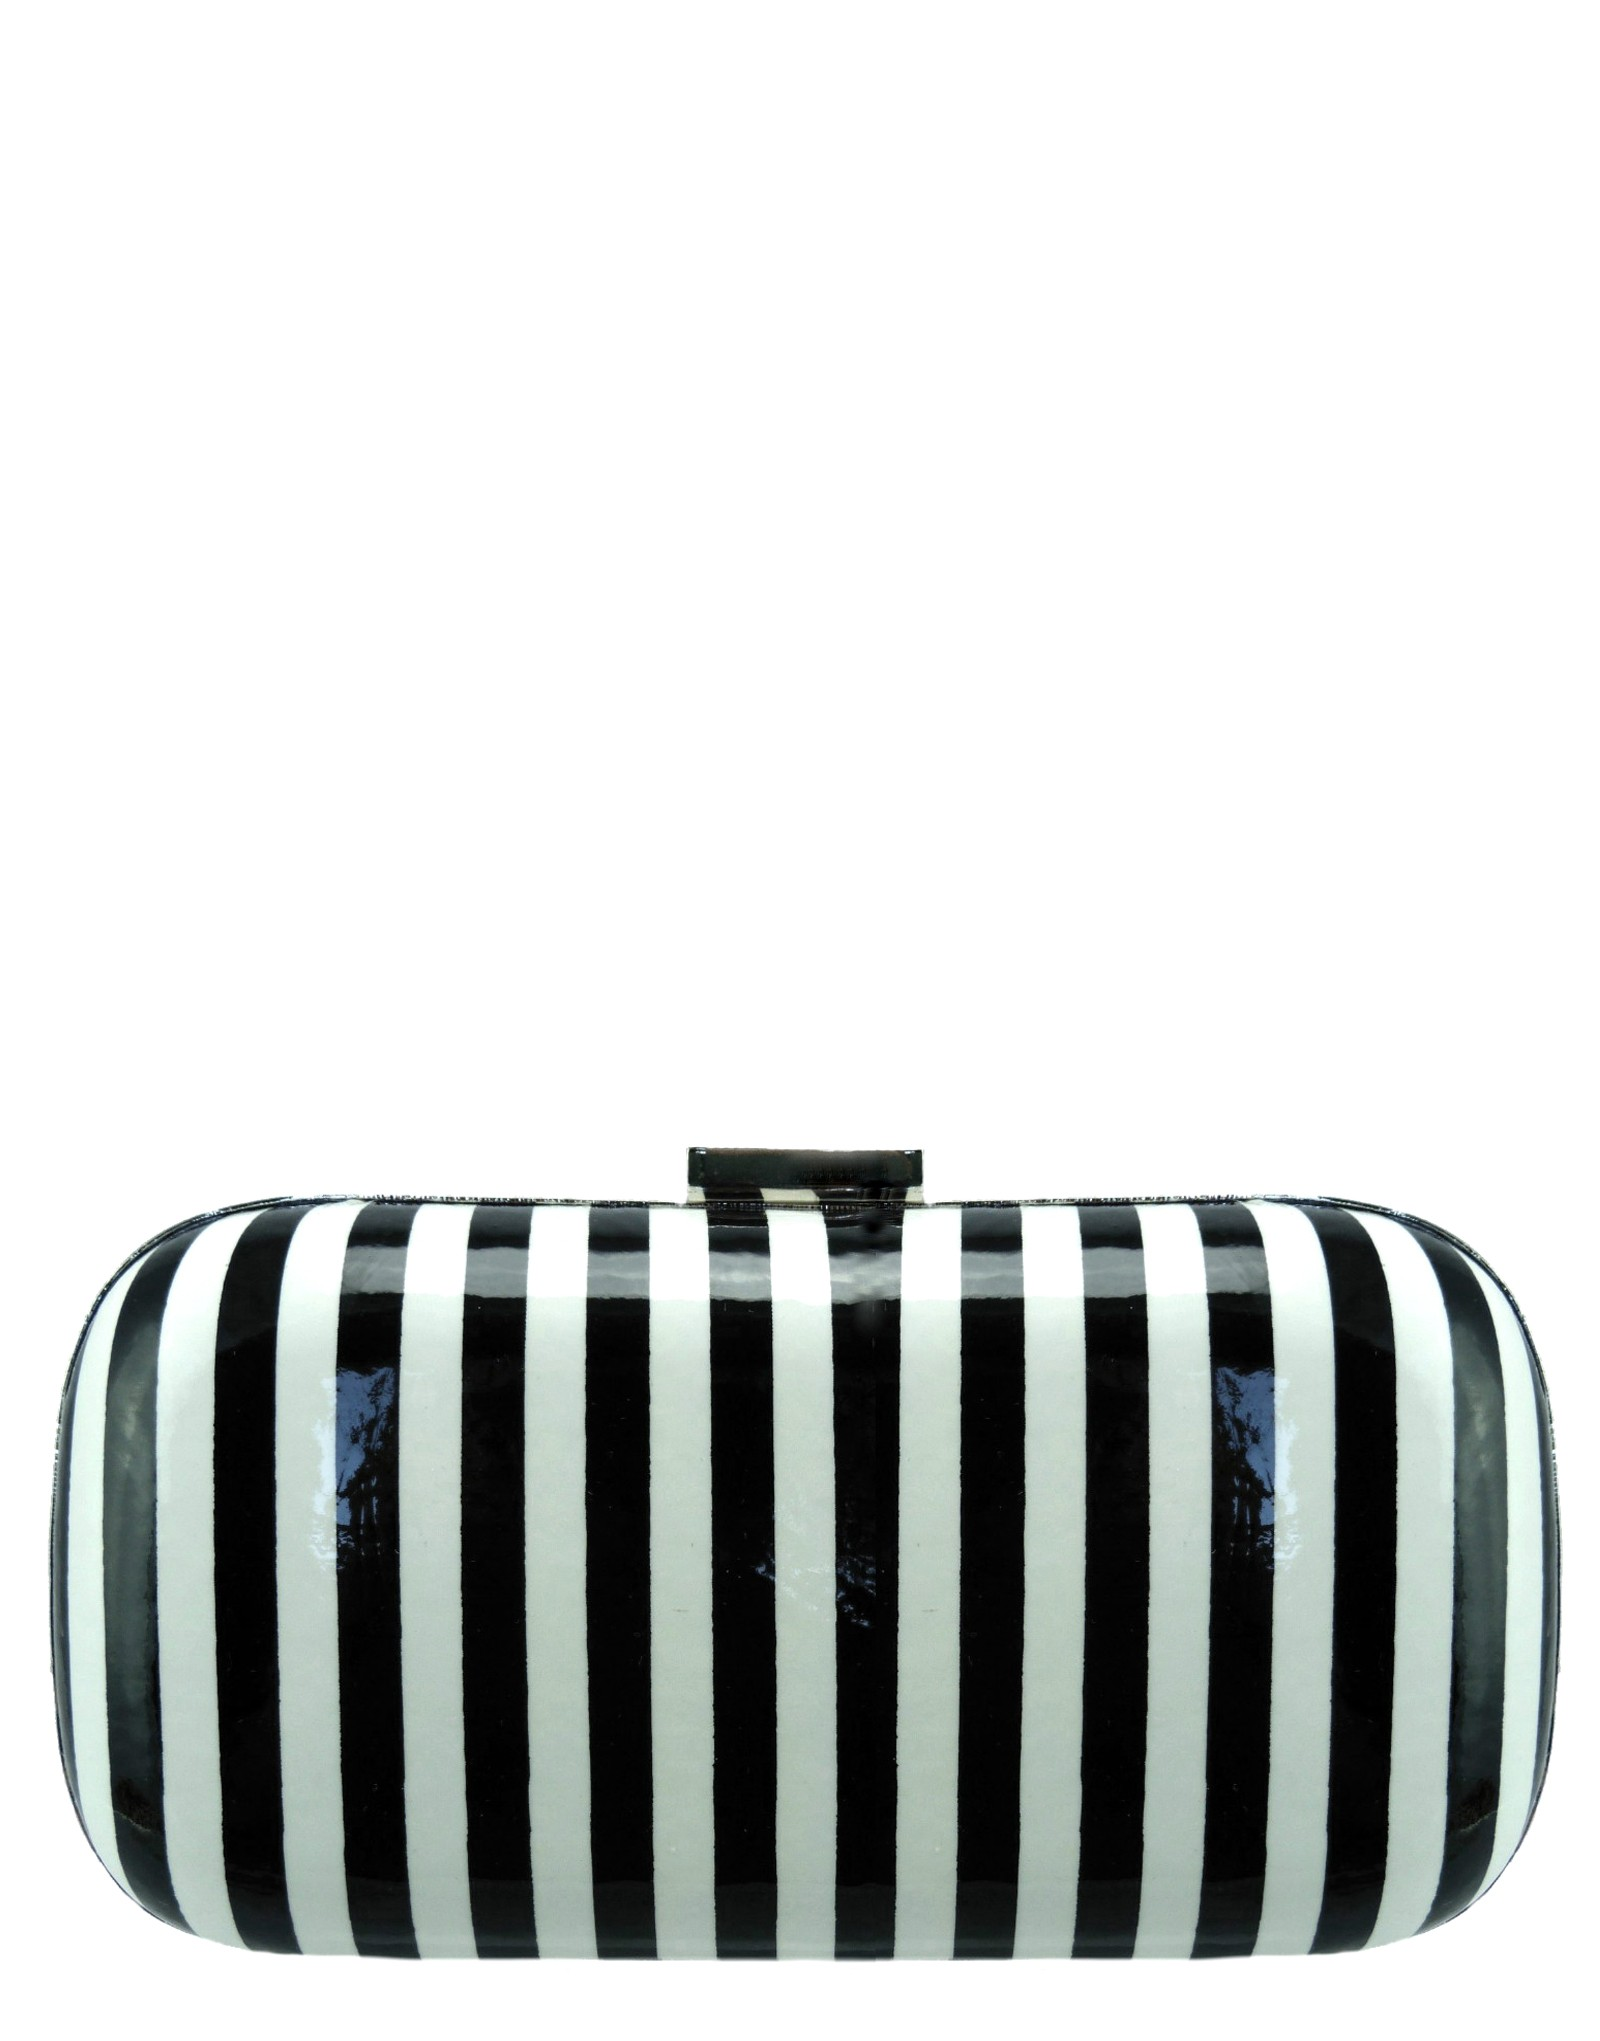 Classic Black And White Monogrammed Initial Tote Bag. $ Ships Next Day. Personalized Weekender Tote. Personalized Striped Clutch Set. $ Gold Foil Team Bride Canvas Tote Bag. Personalized Striped Lunch Bag Cooler. $ Personalized Striped Backpack Cooler.